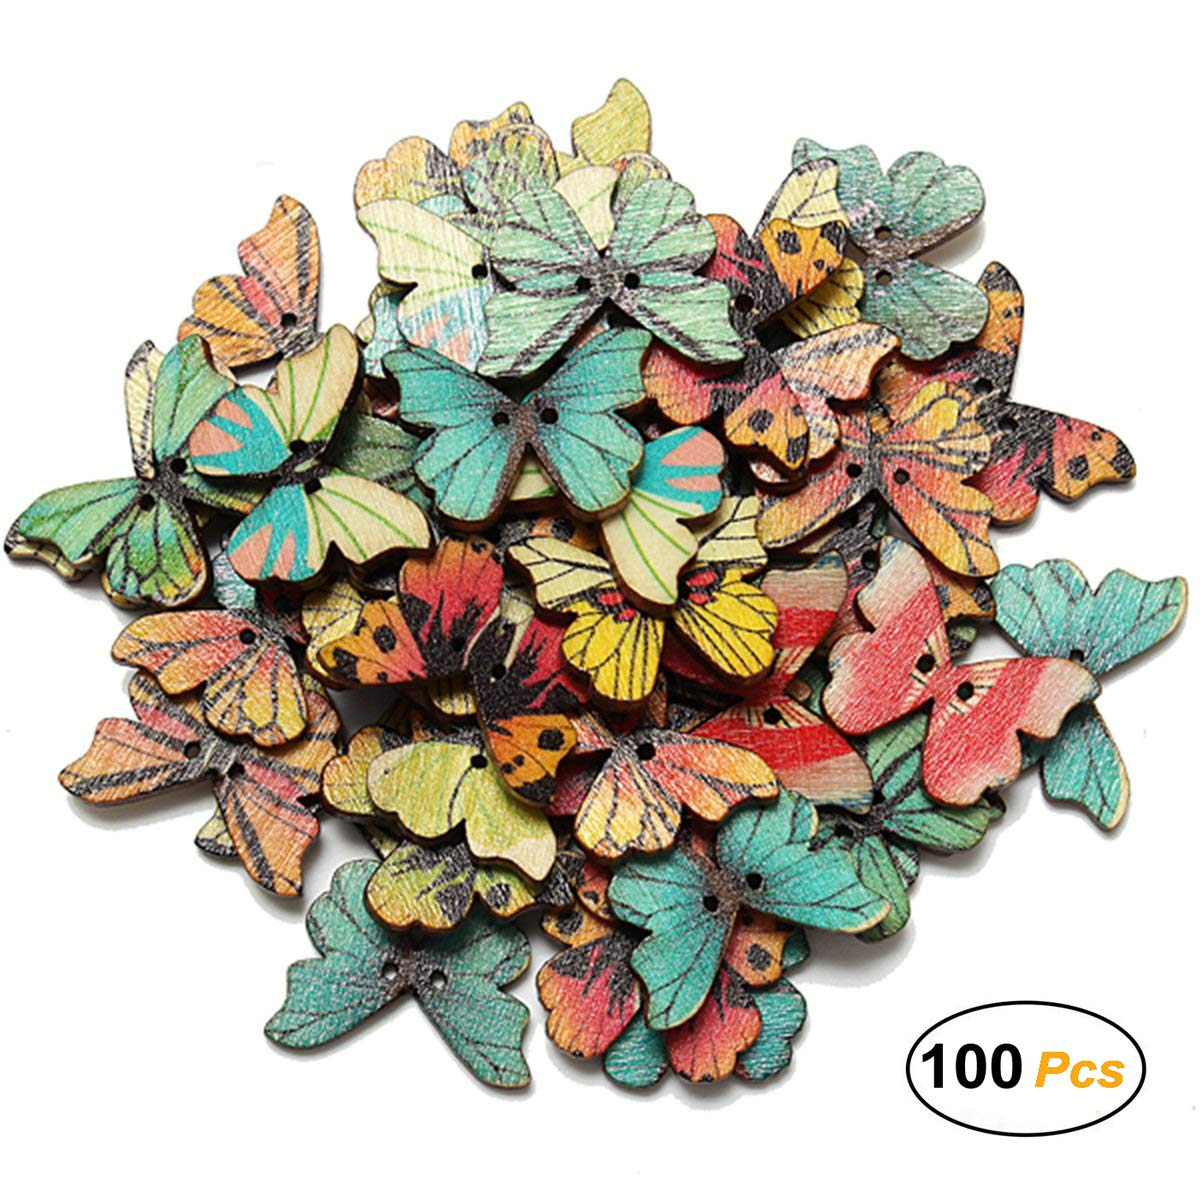 100 Pcs Colorful 2 Holes Mixed Butterfly Wooden Button für Sewing Scrapbooking Diy Craft Clothes Accessories, 1 Inch